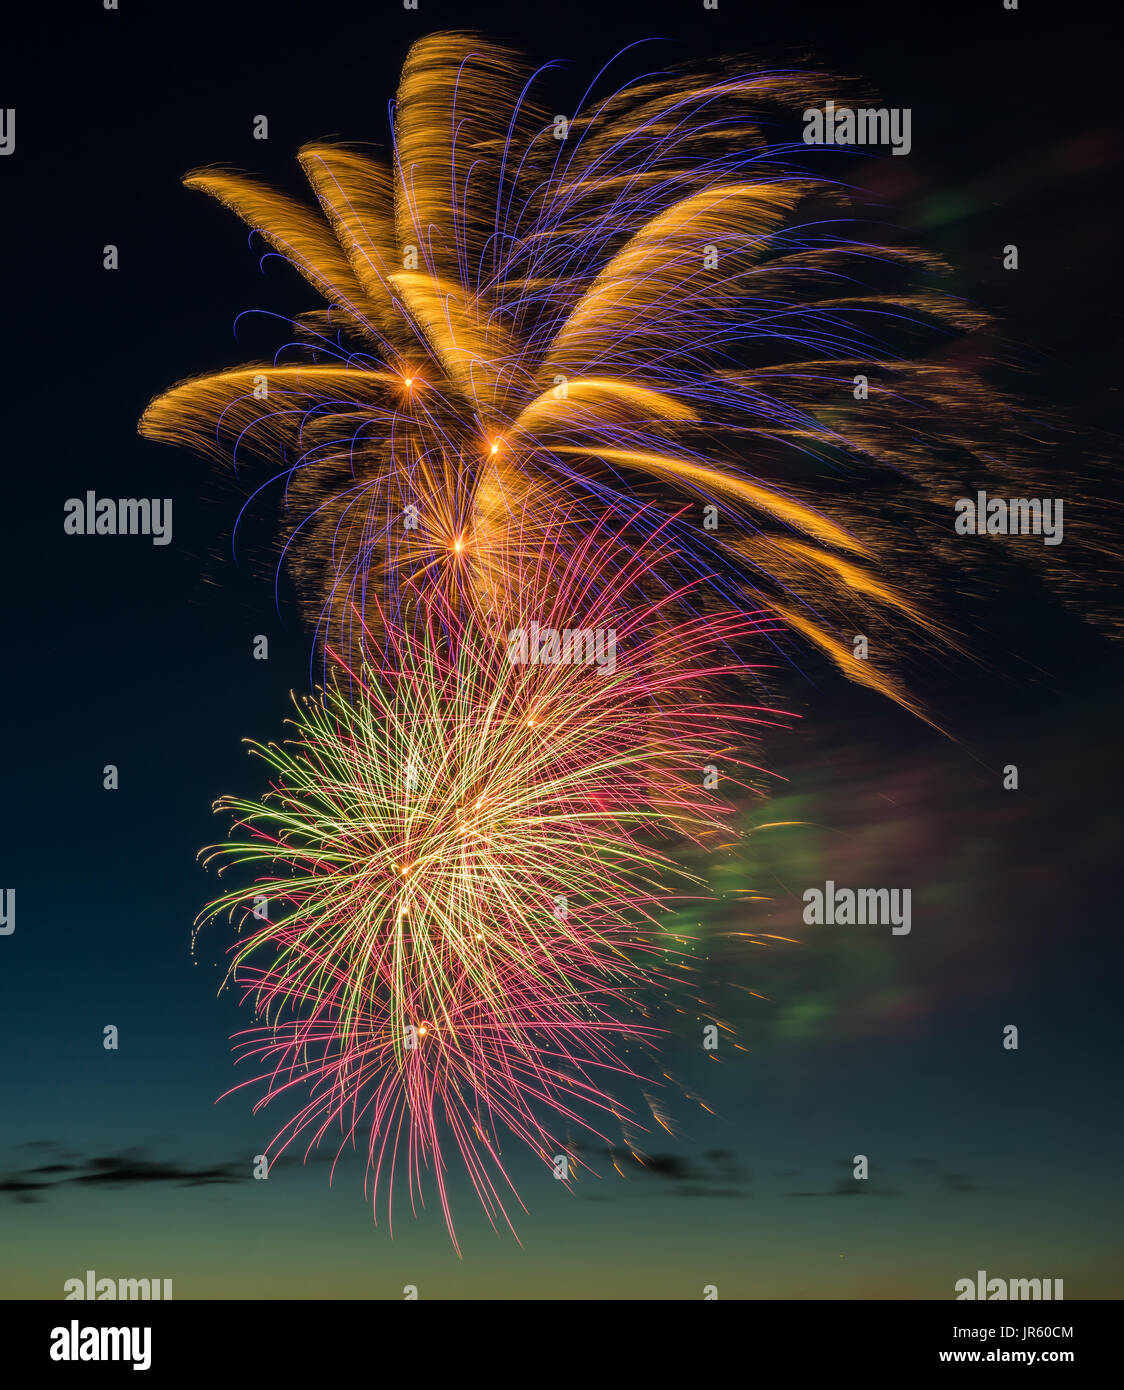 Canada's 150th. anniversary was celebrated by a spectacular fireworks display in Barrie, Ontario, Canada on July 1, 2017. - Stock Image